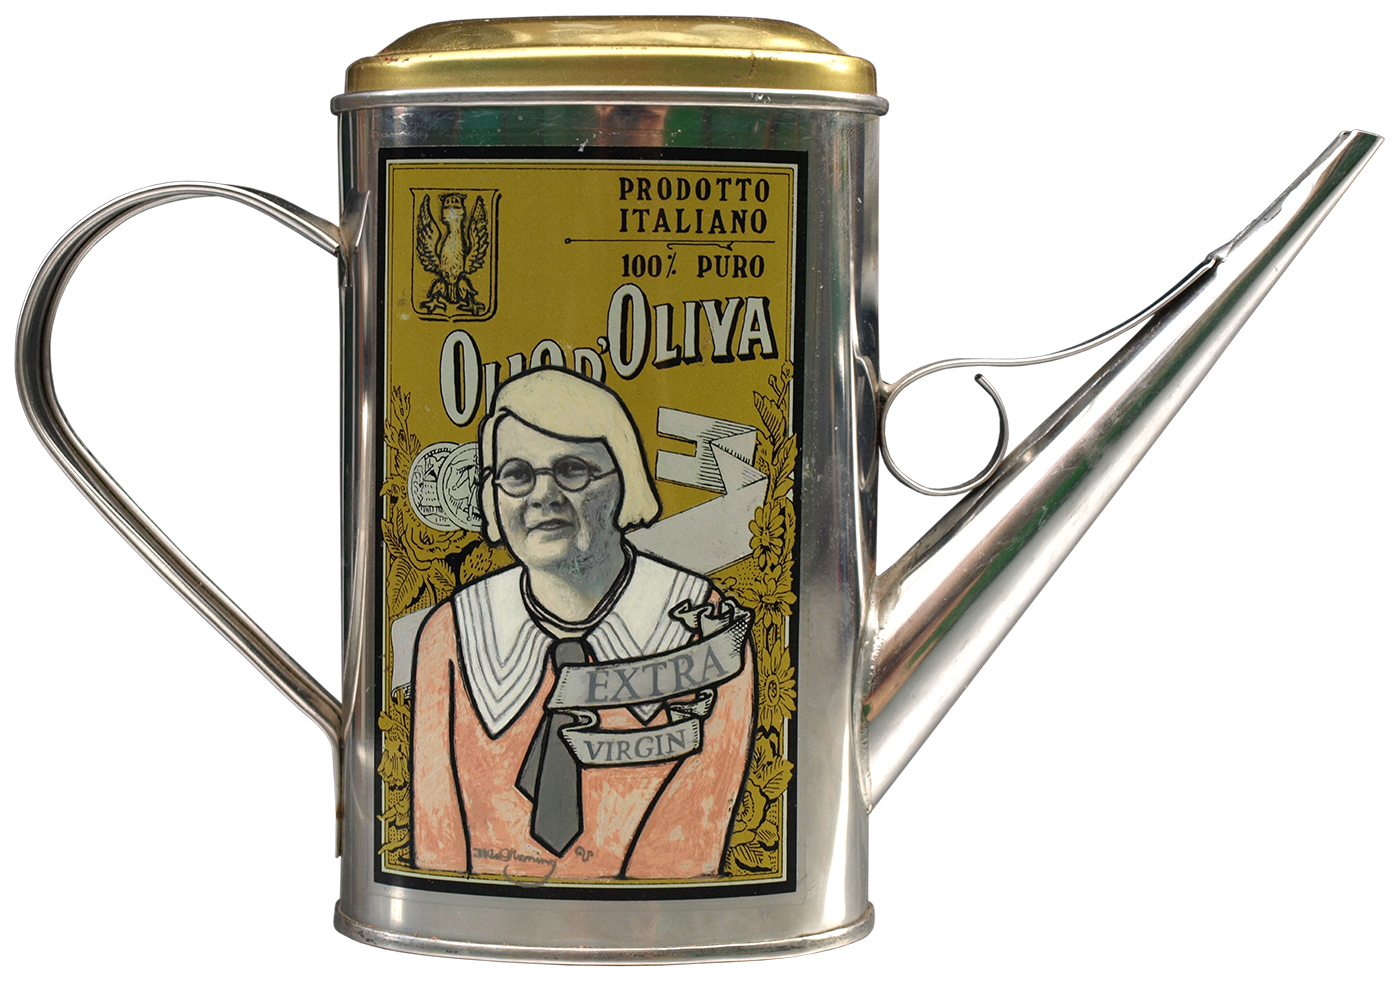 Extra Virgin (2008) oil on tin can by David Le Fleming